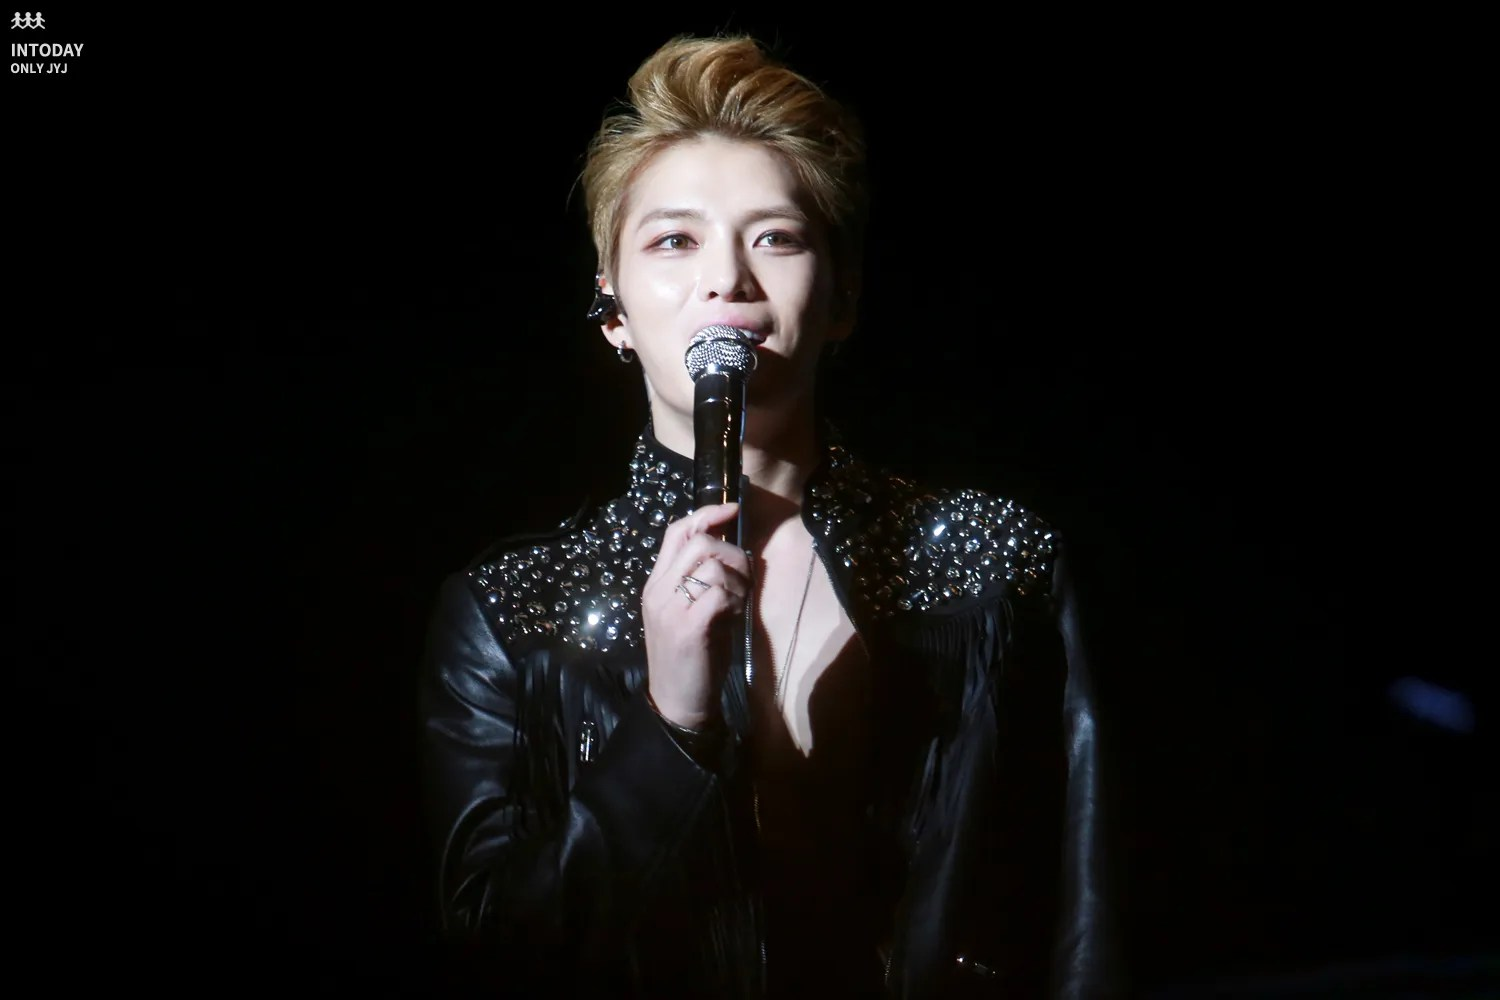 photo JYJ_inToday_01.jpg